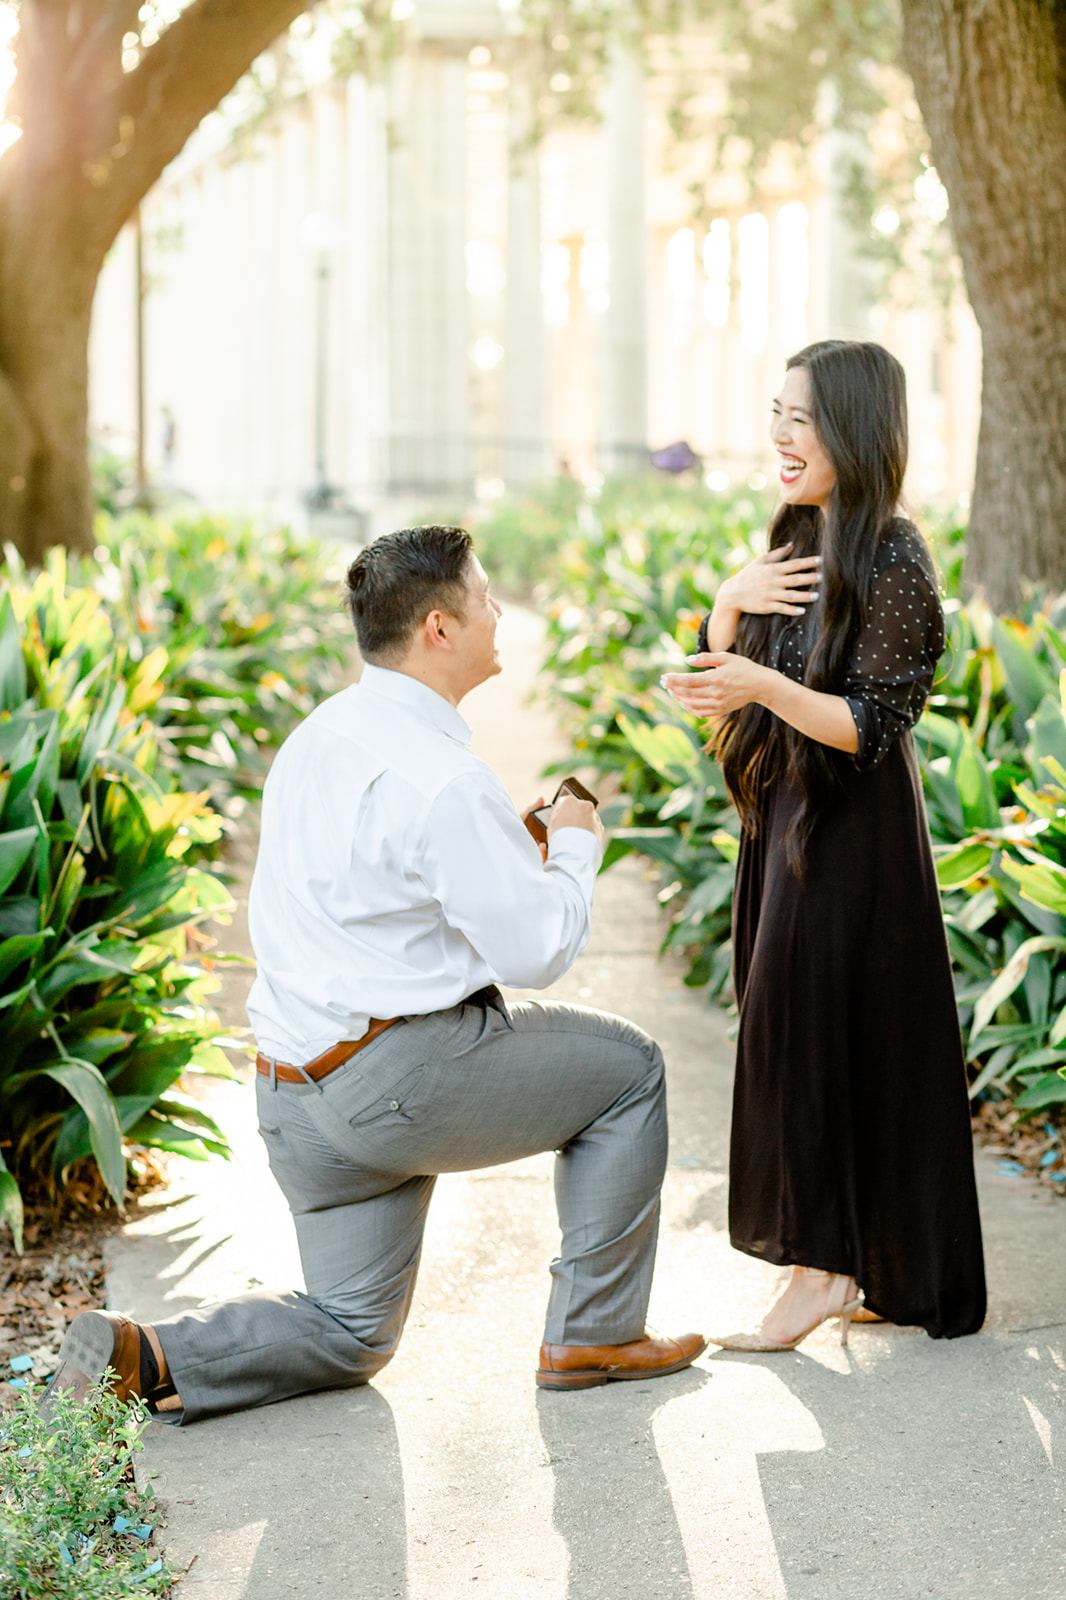 New Orleans City Park Proposal bride to be says yes